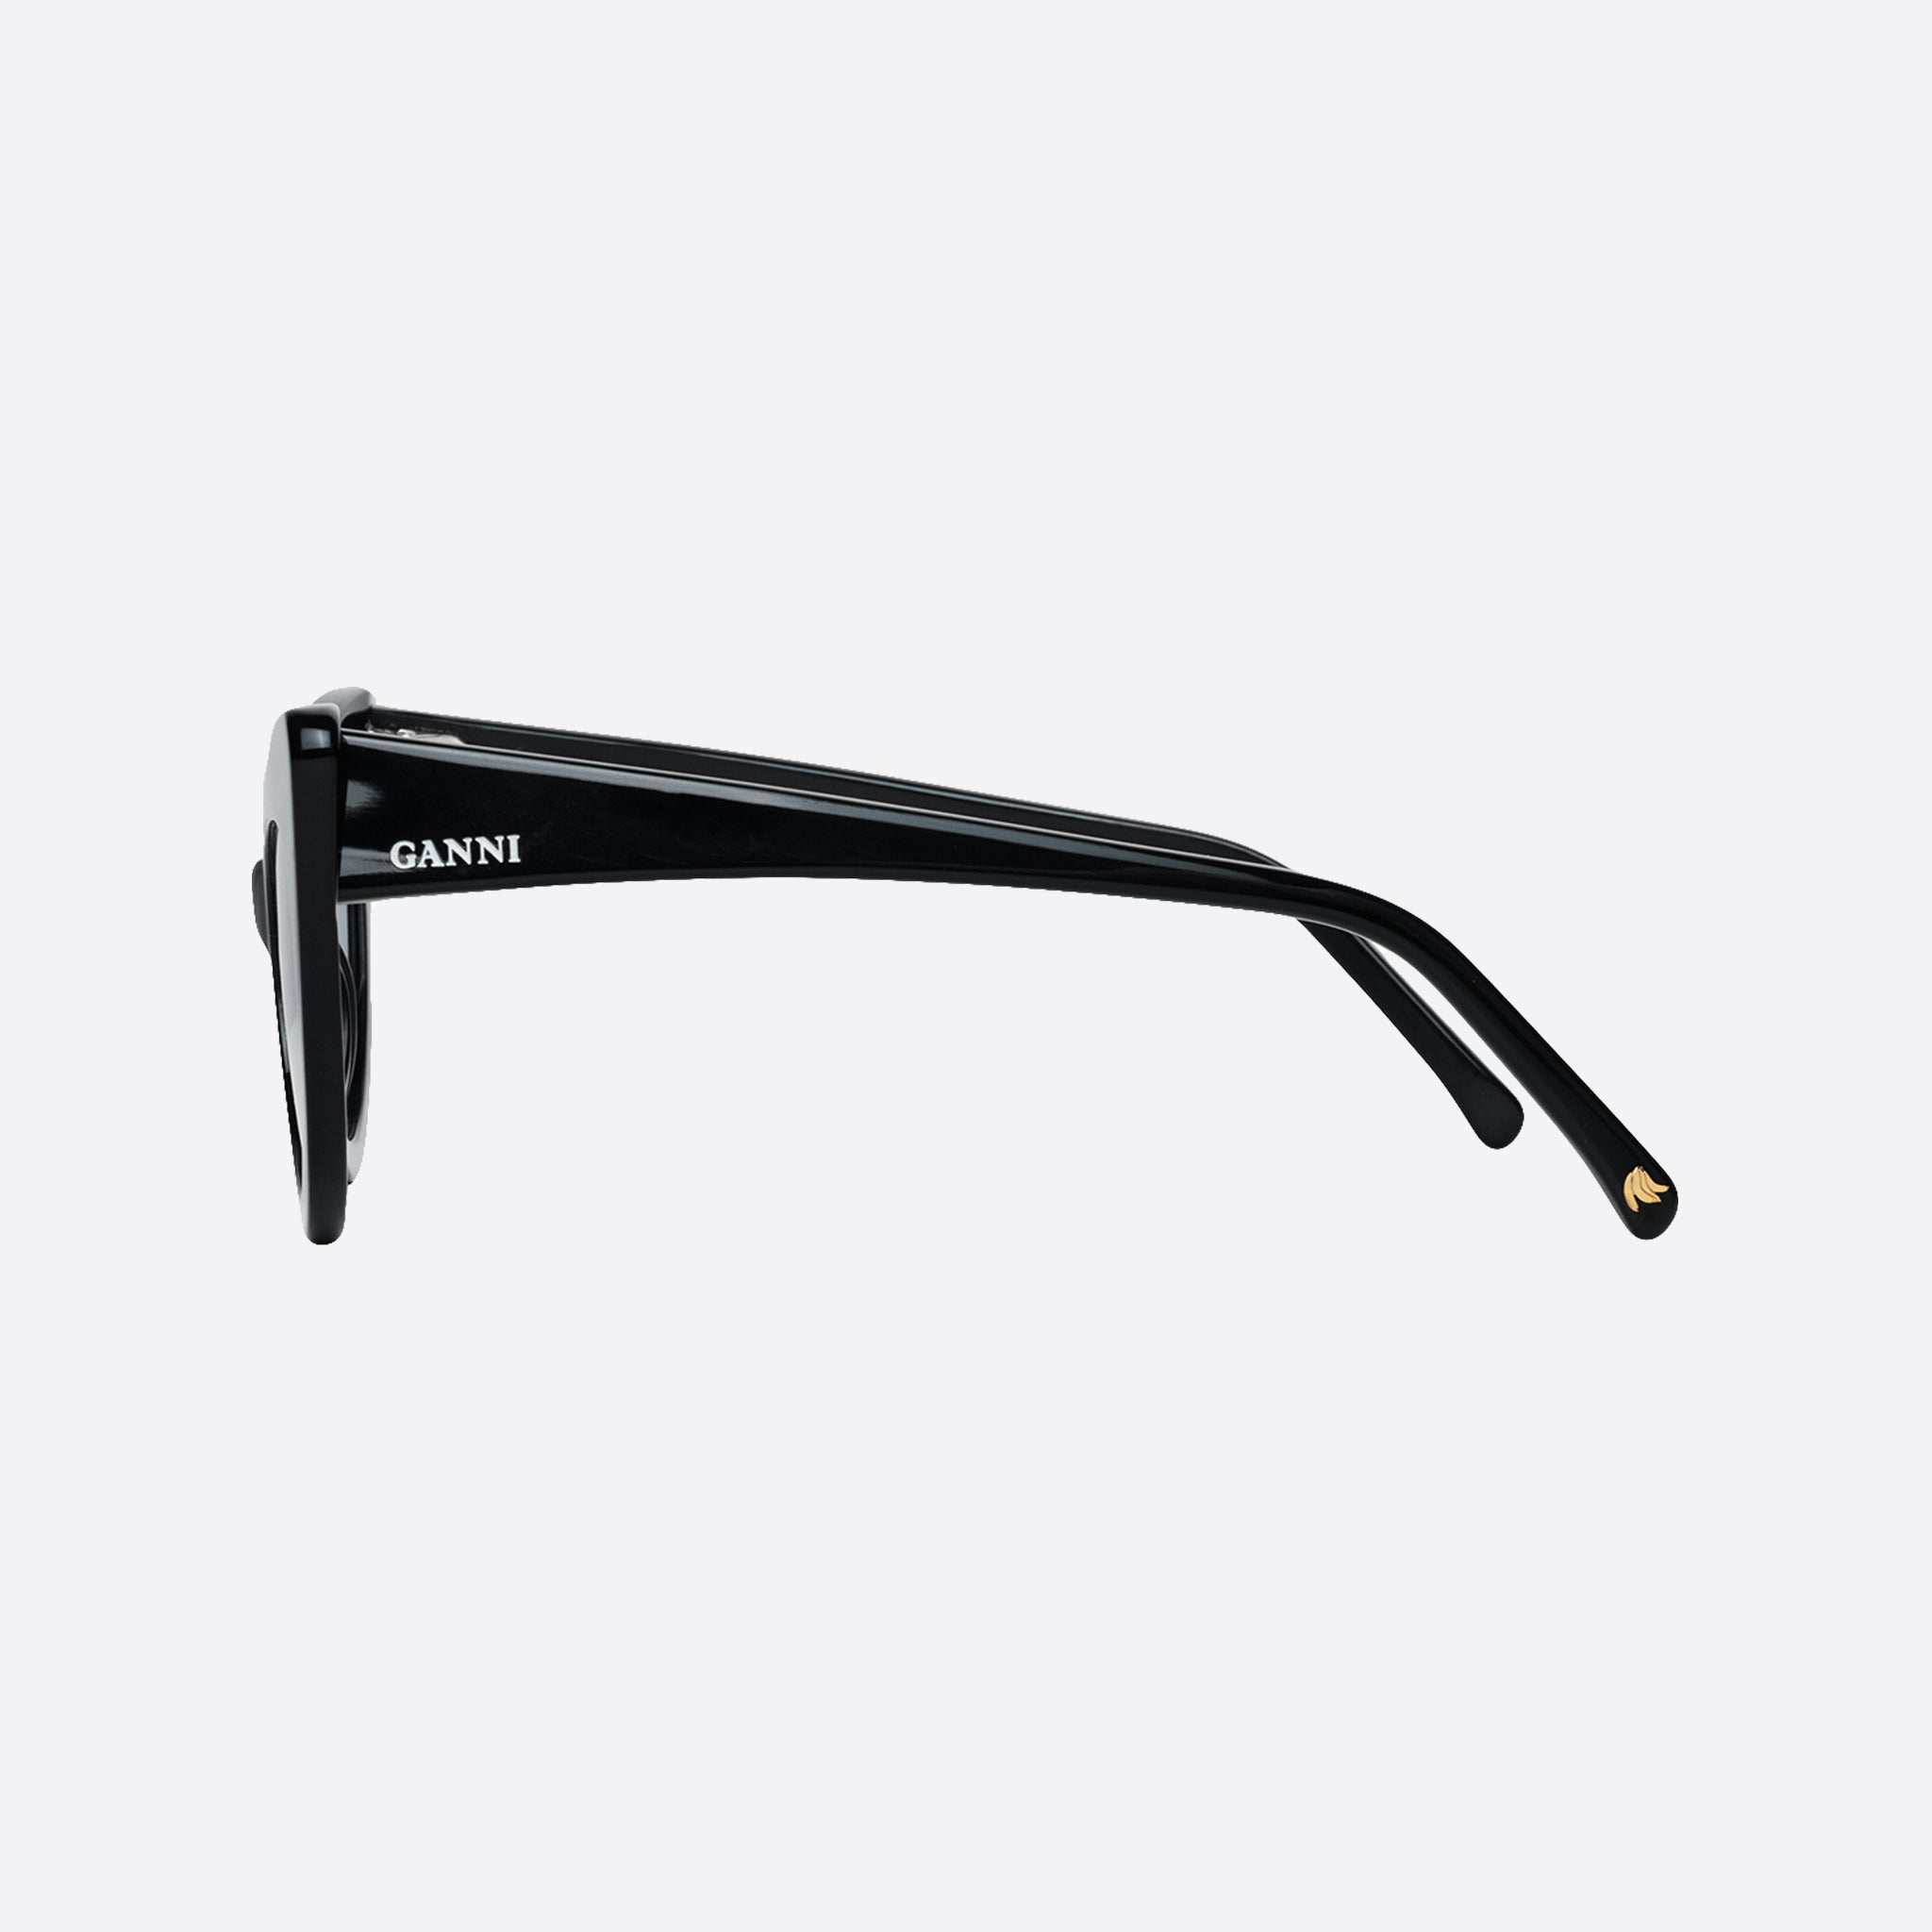 Ganni Lulu Sunglasses in Black